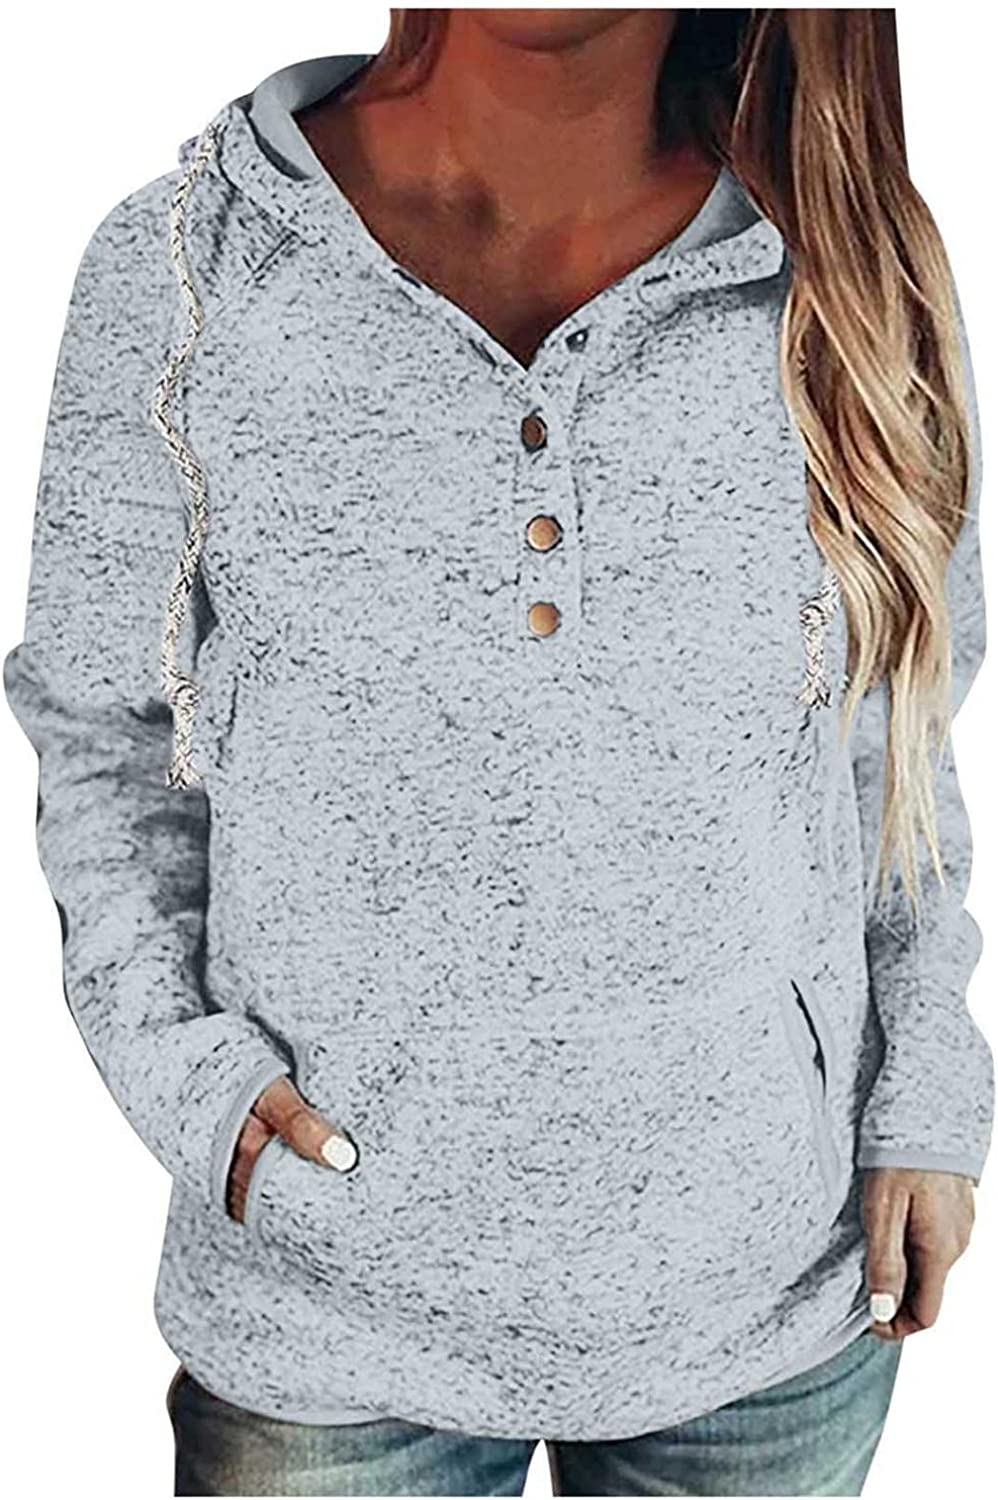 UOCUFY Hoodies for Women, Womens Pullover Button Down Drawstring Hoodies with Pockets Casual Long Sleeve Sweatshirts